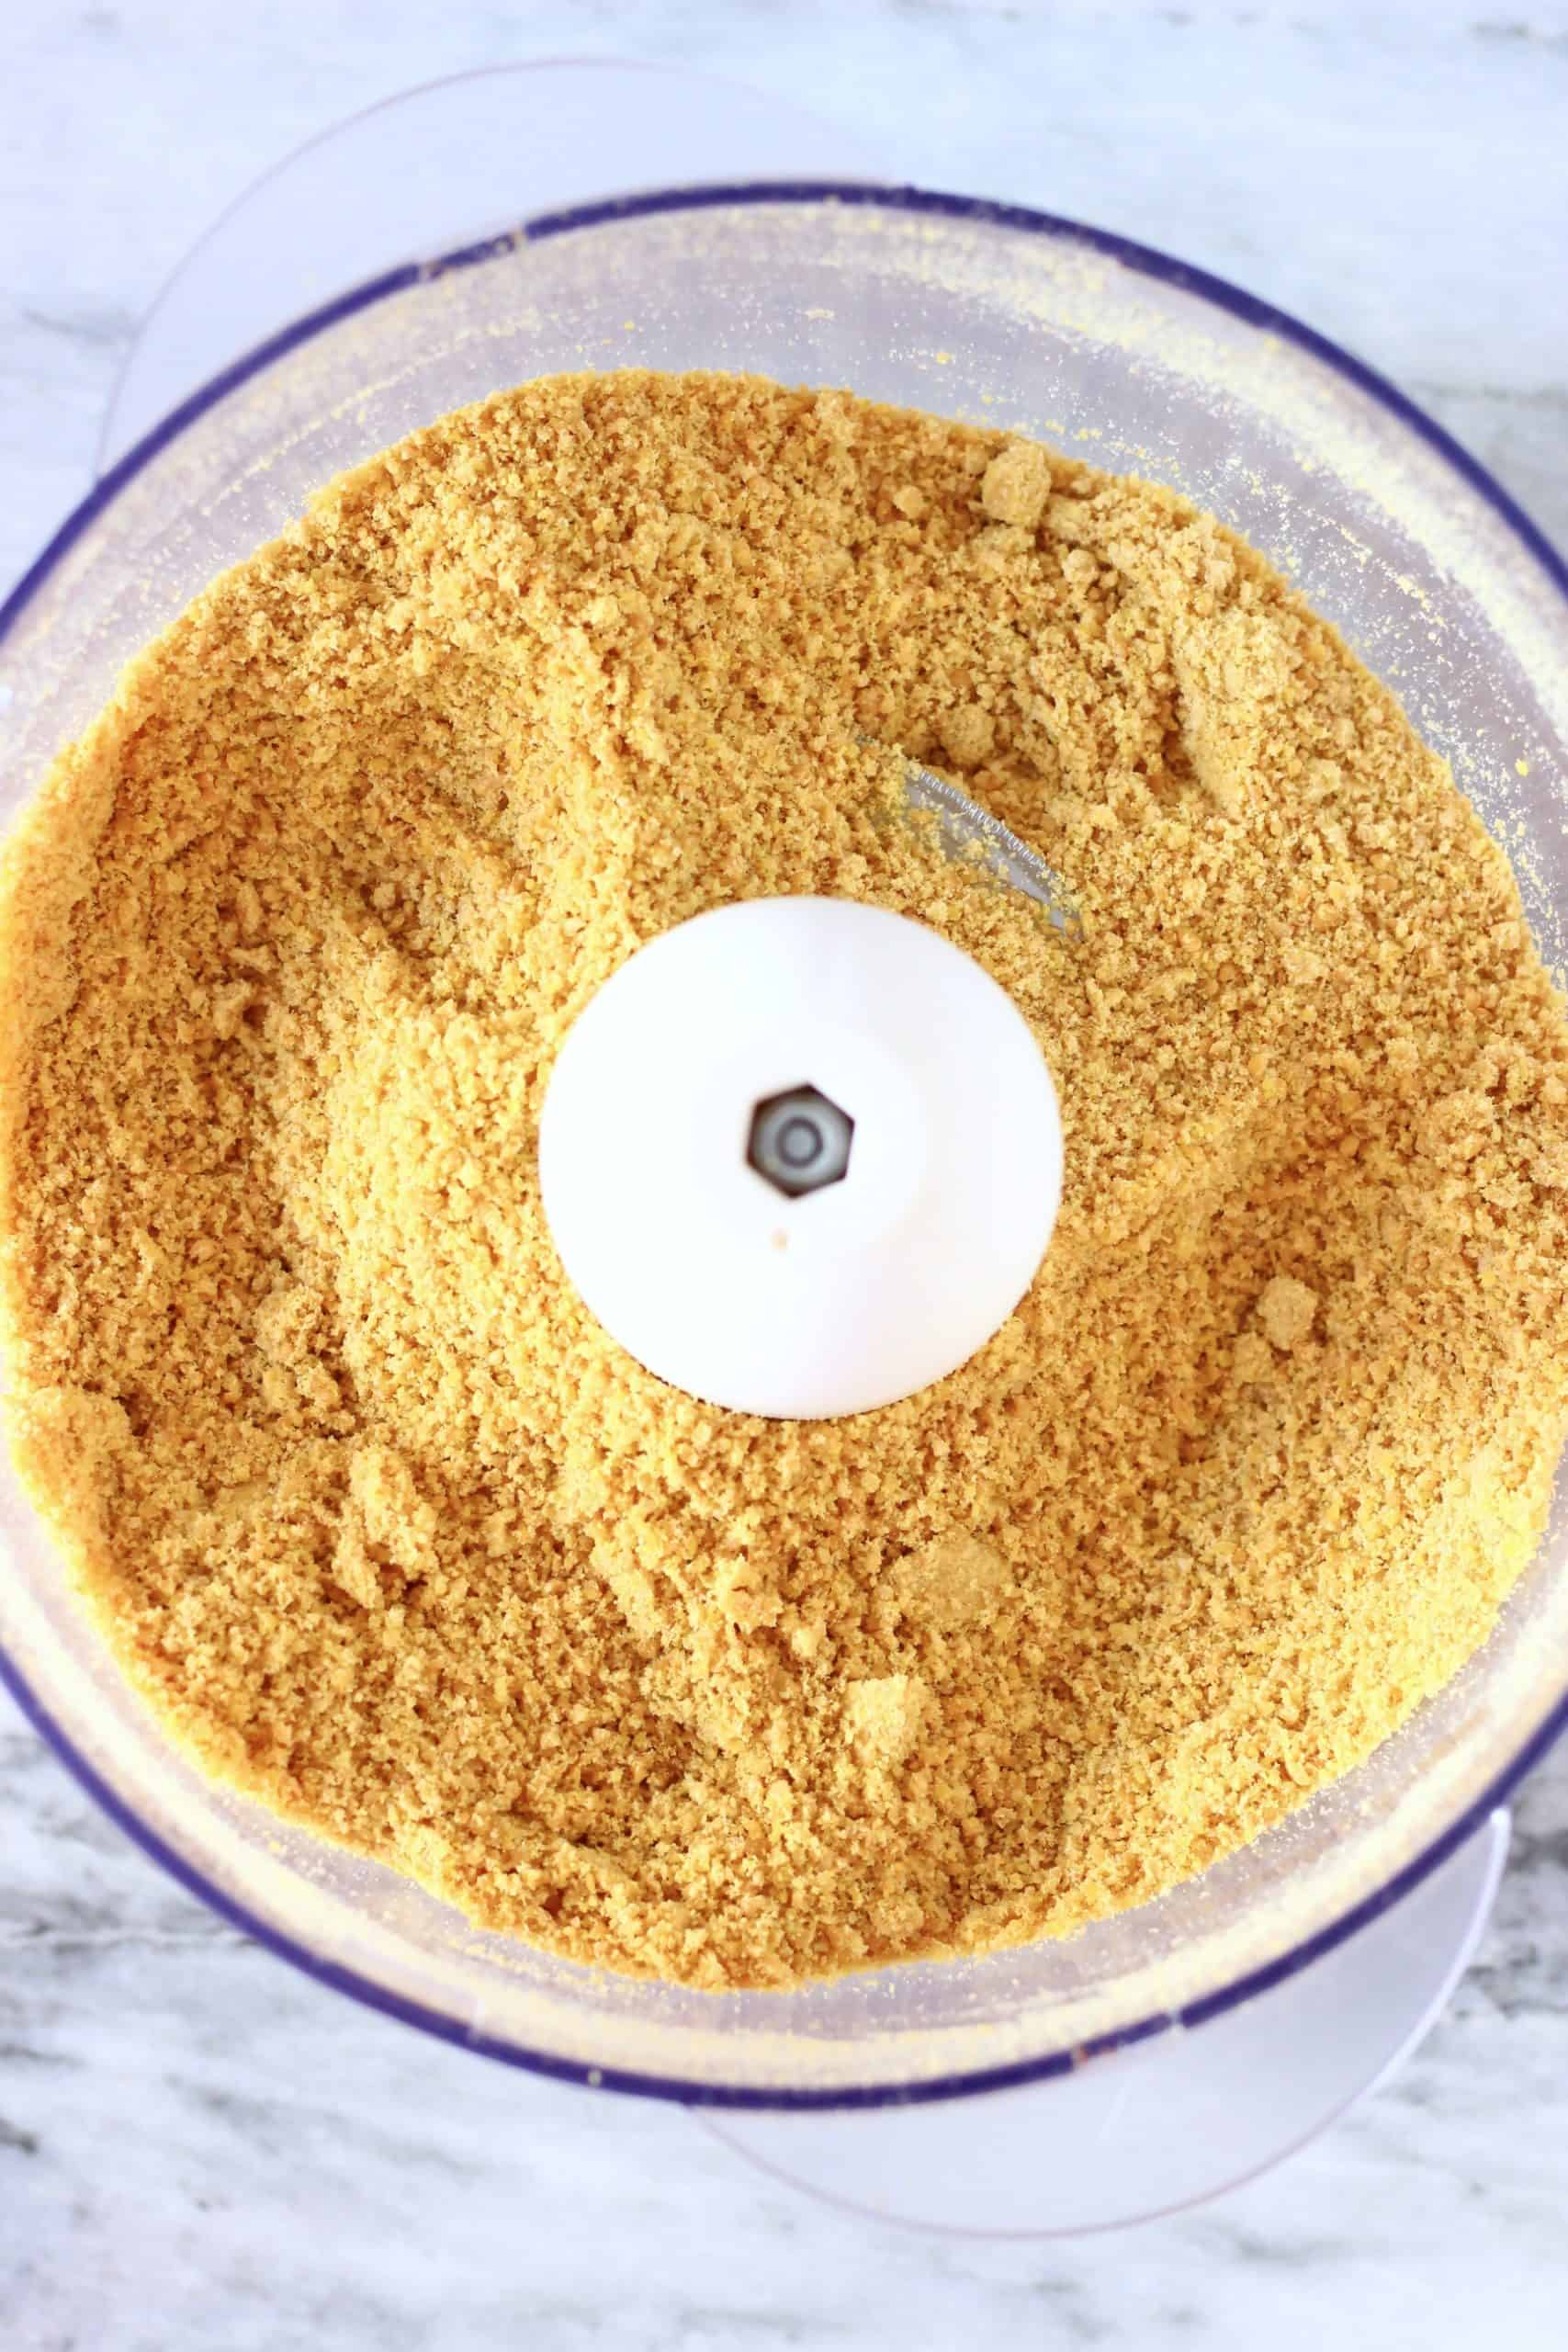 Golden flaxseed powder in a food processor